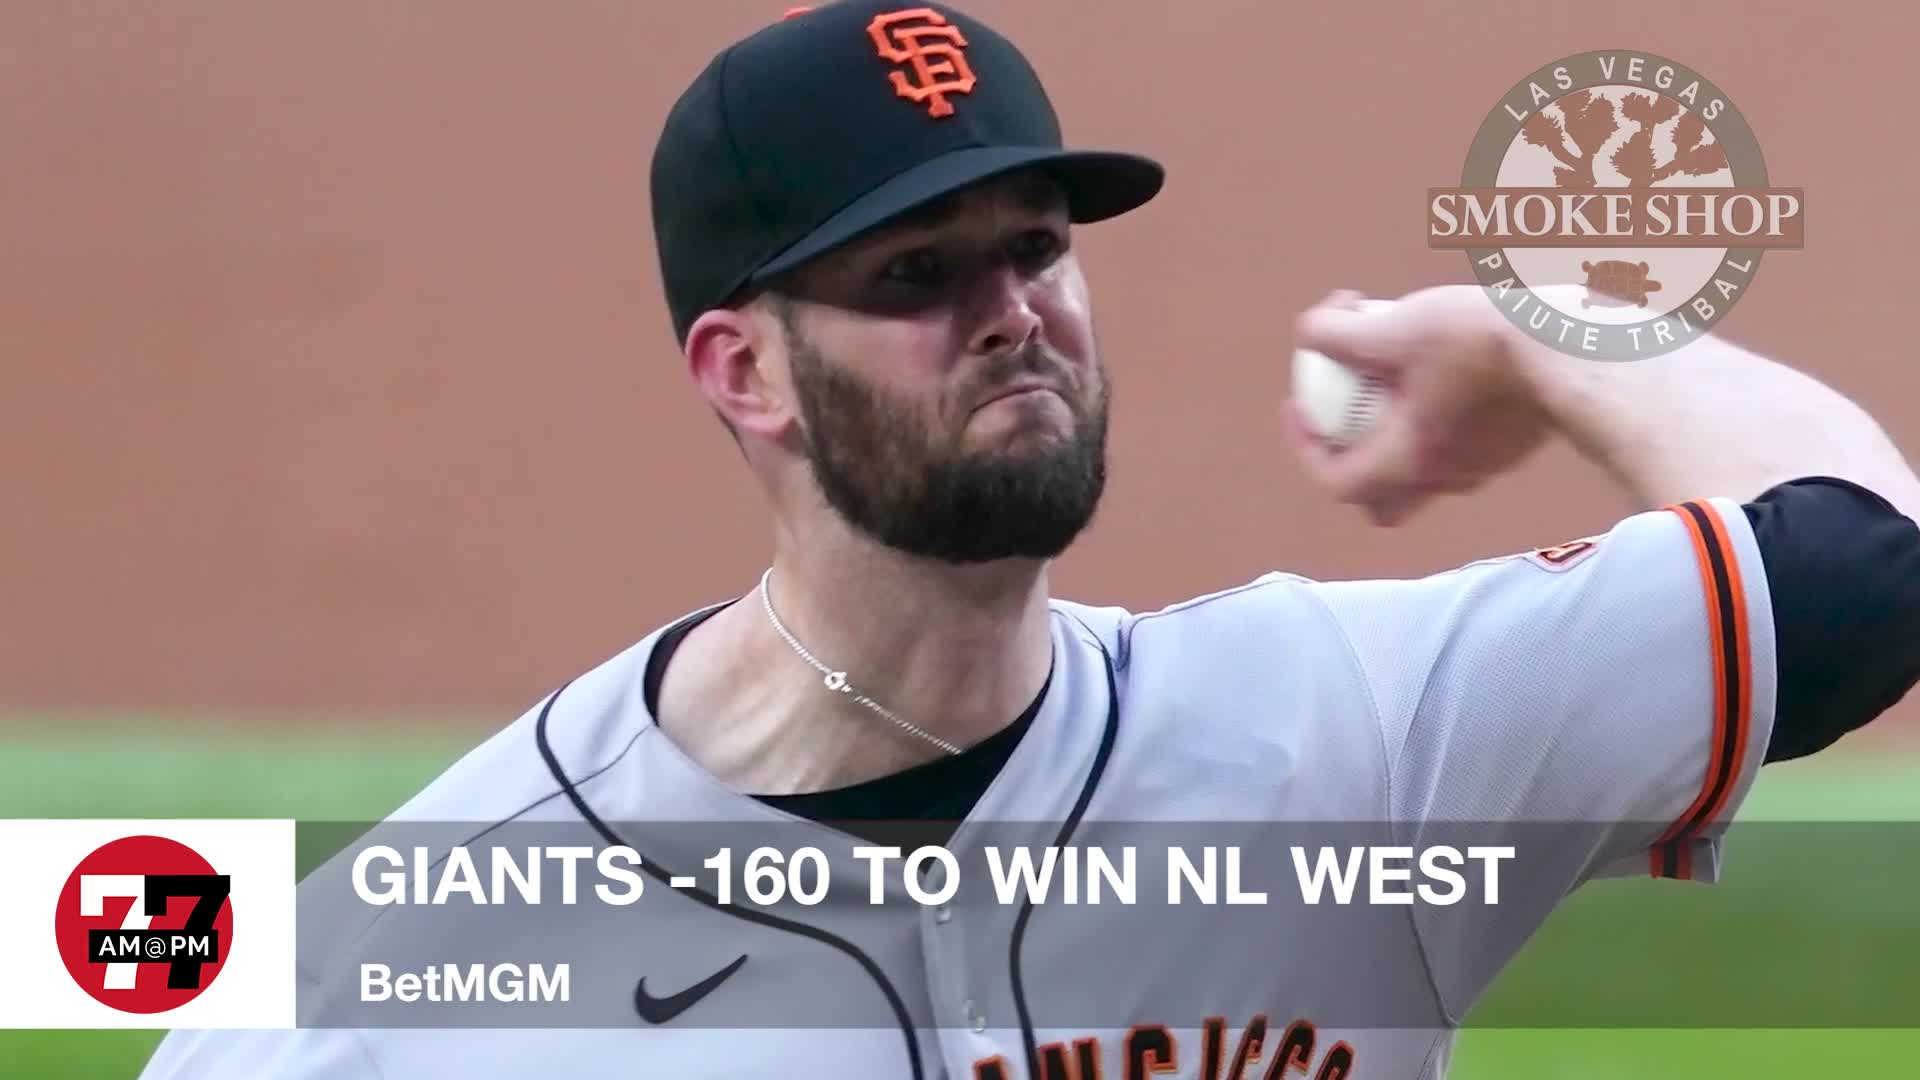 7@7PM Giants -160 to Win NL West